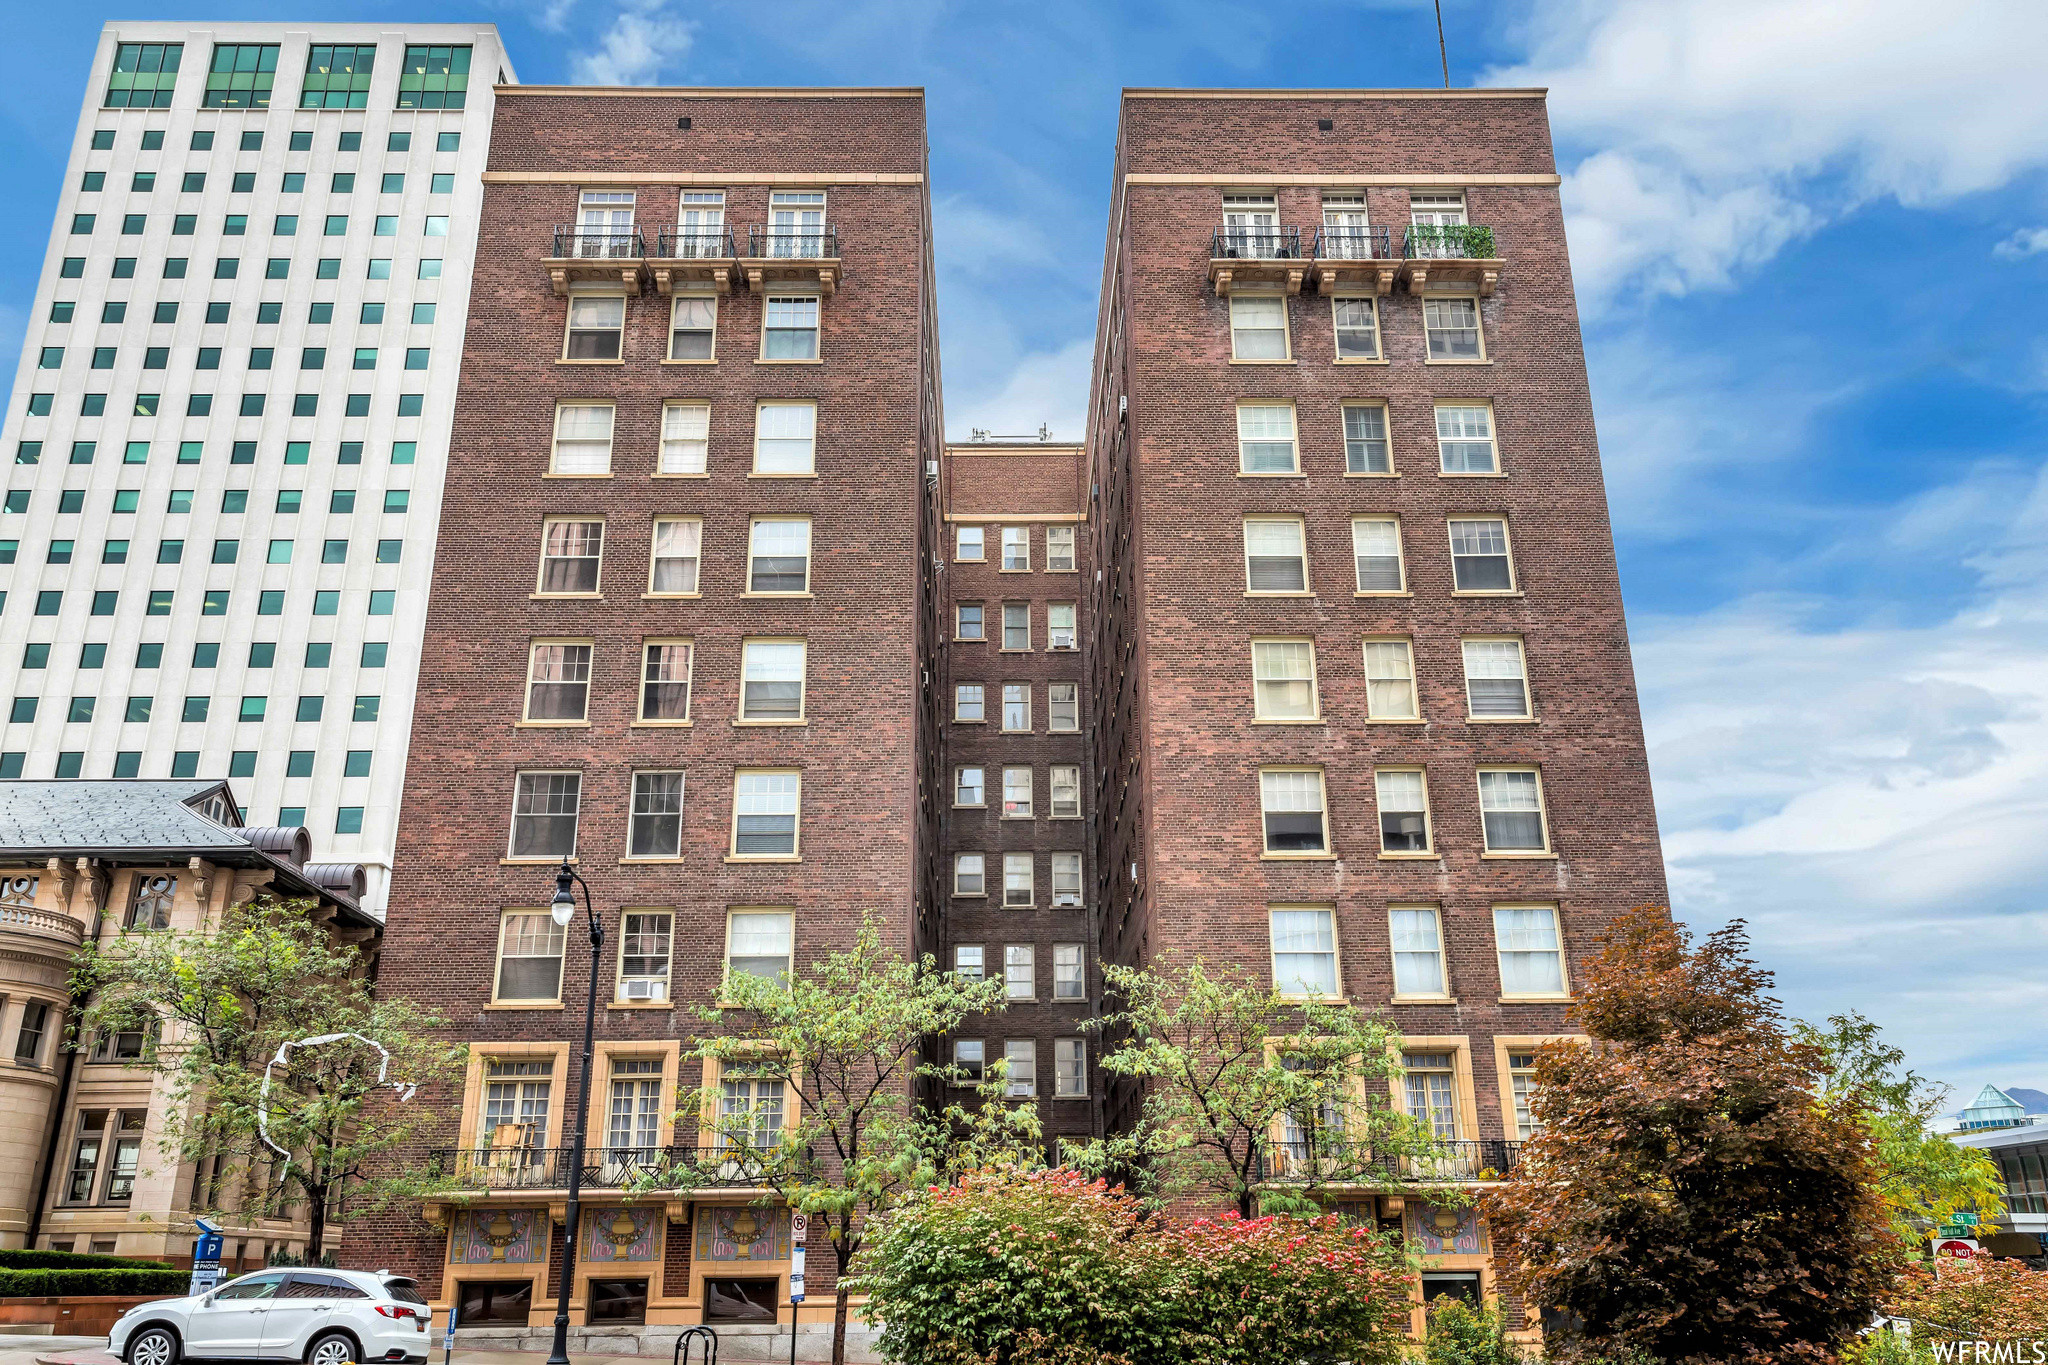 Luxurious 1-Bedroom Condo In Salt Lake City Central Business District